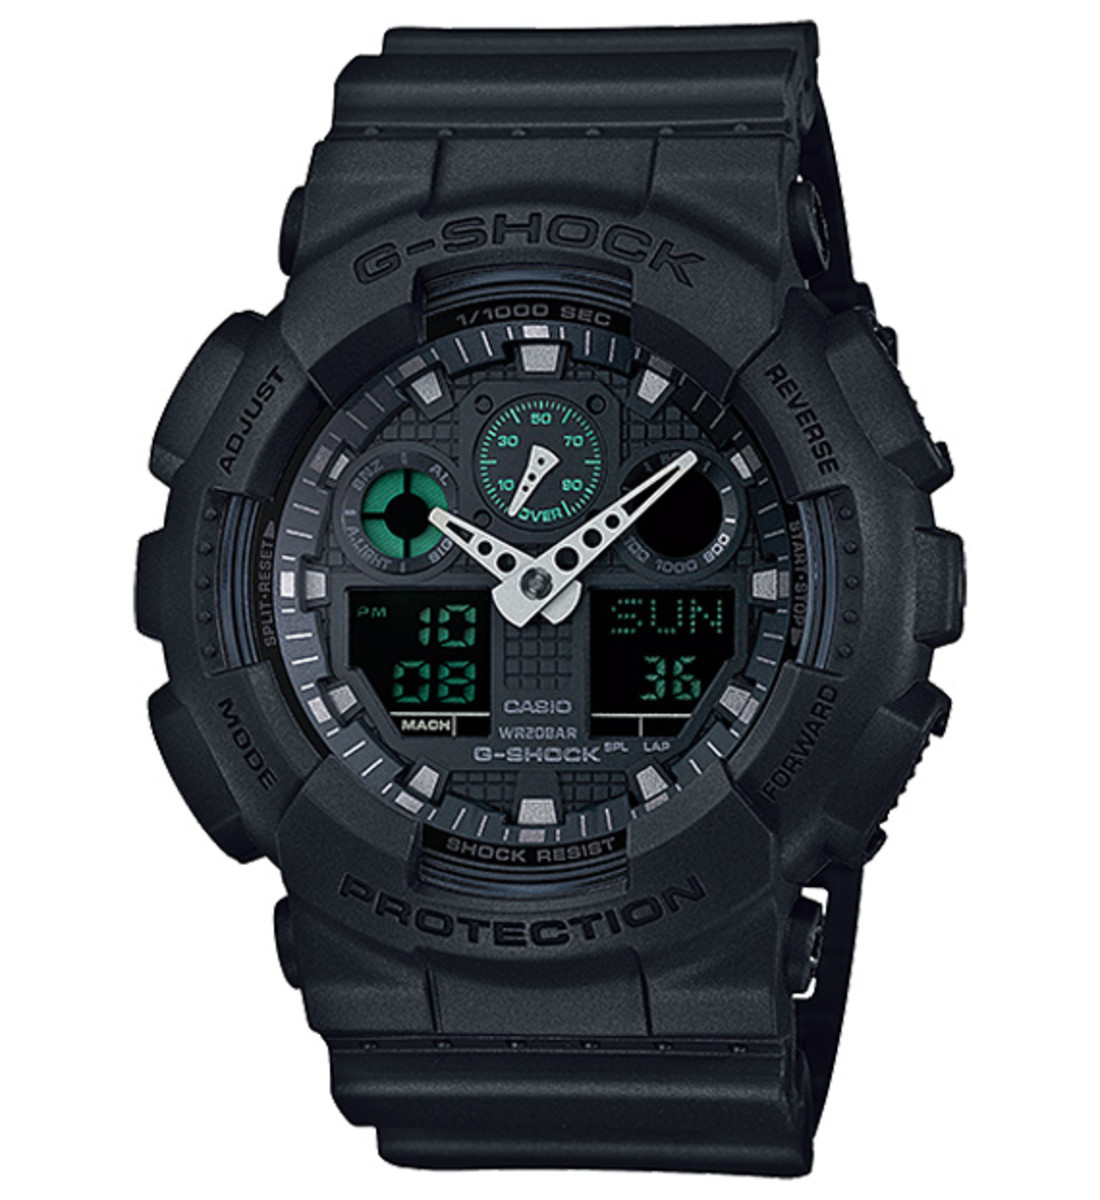 Casio G-Shock GA-100MB-1AJF